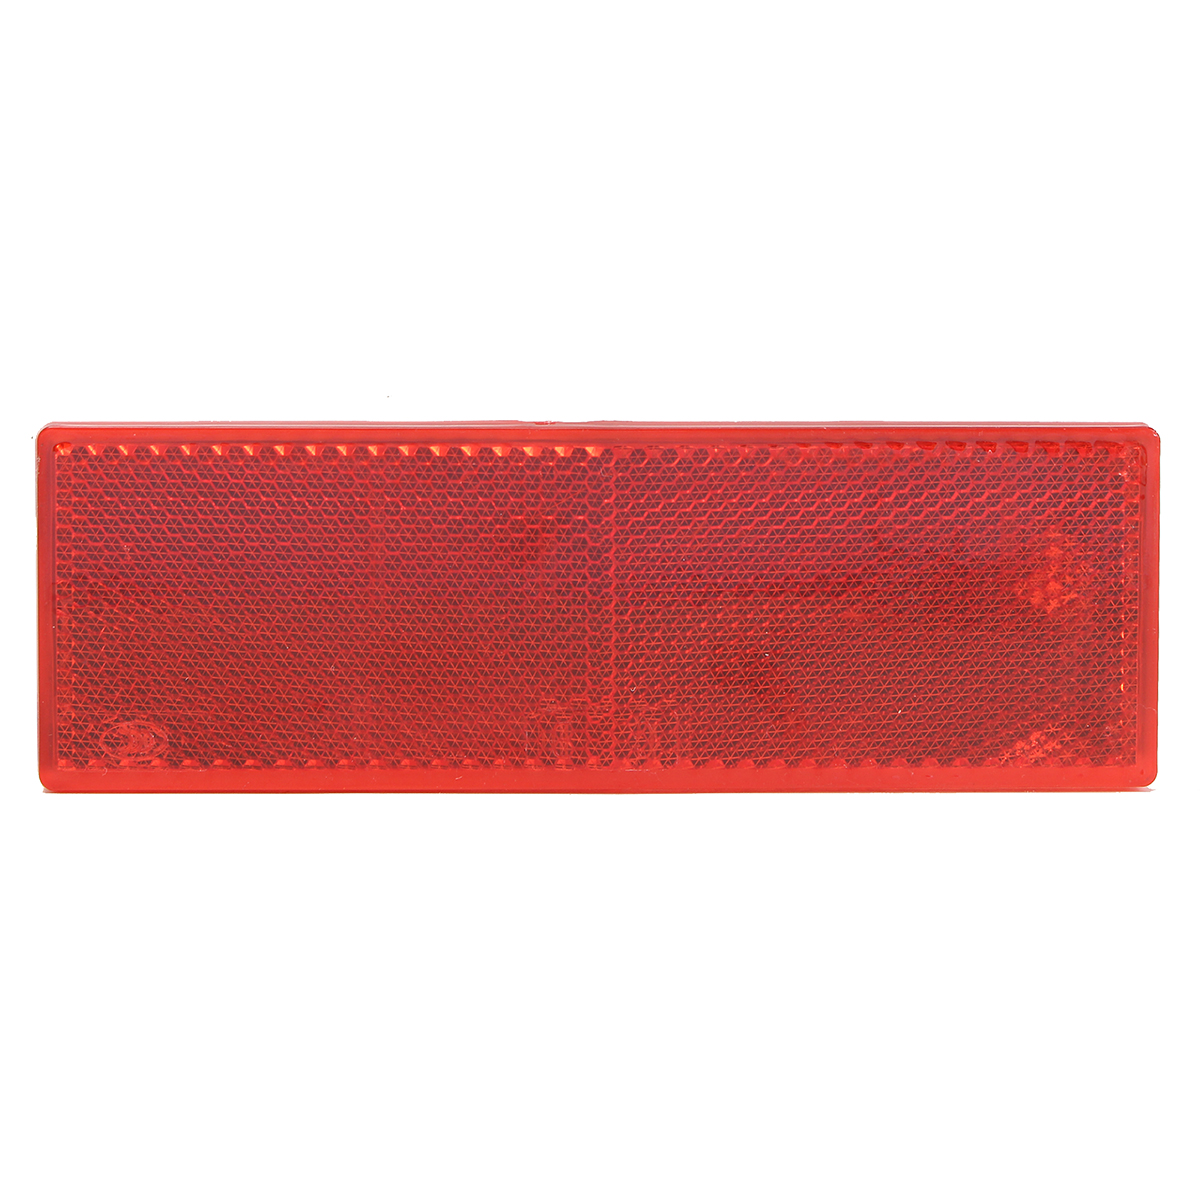 150x50mm Red Rectangle Reflector Reflective Strips Side Marker Self-Adhesive for Vehicles